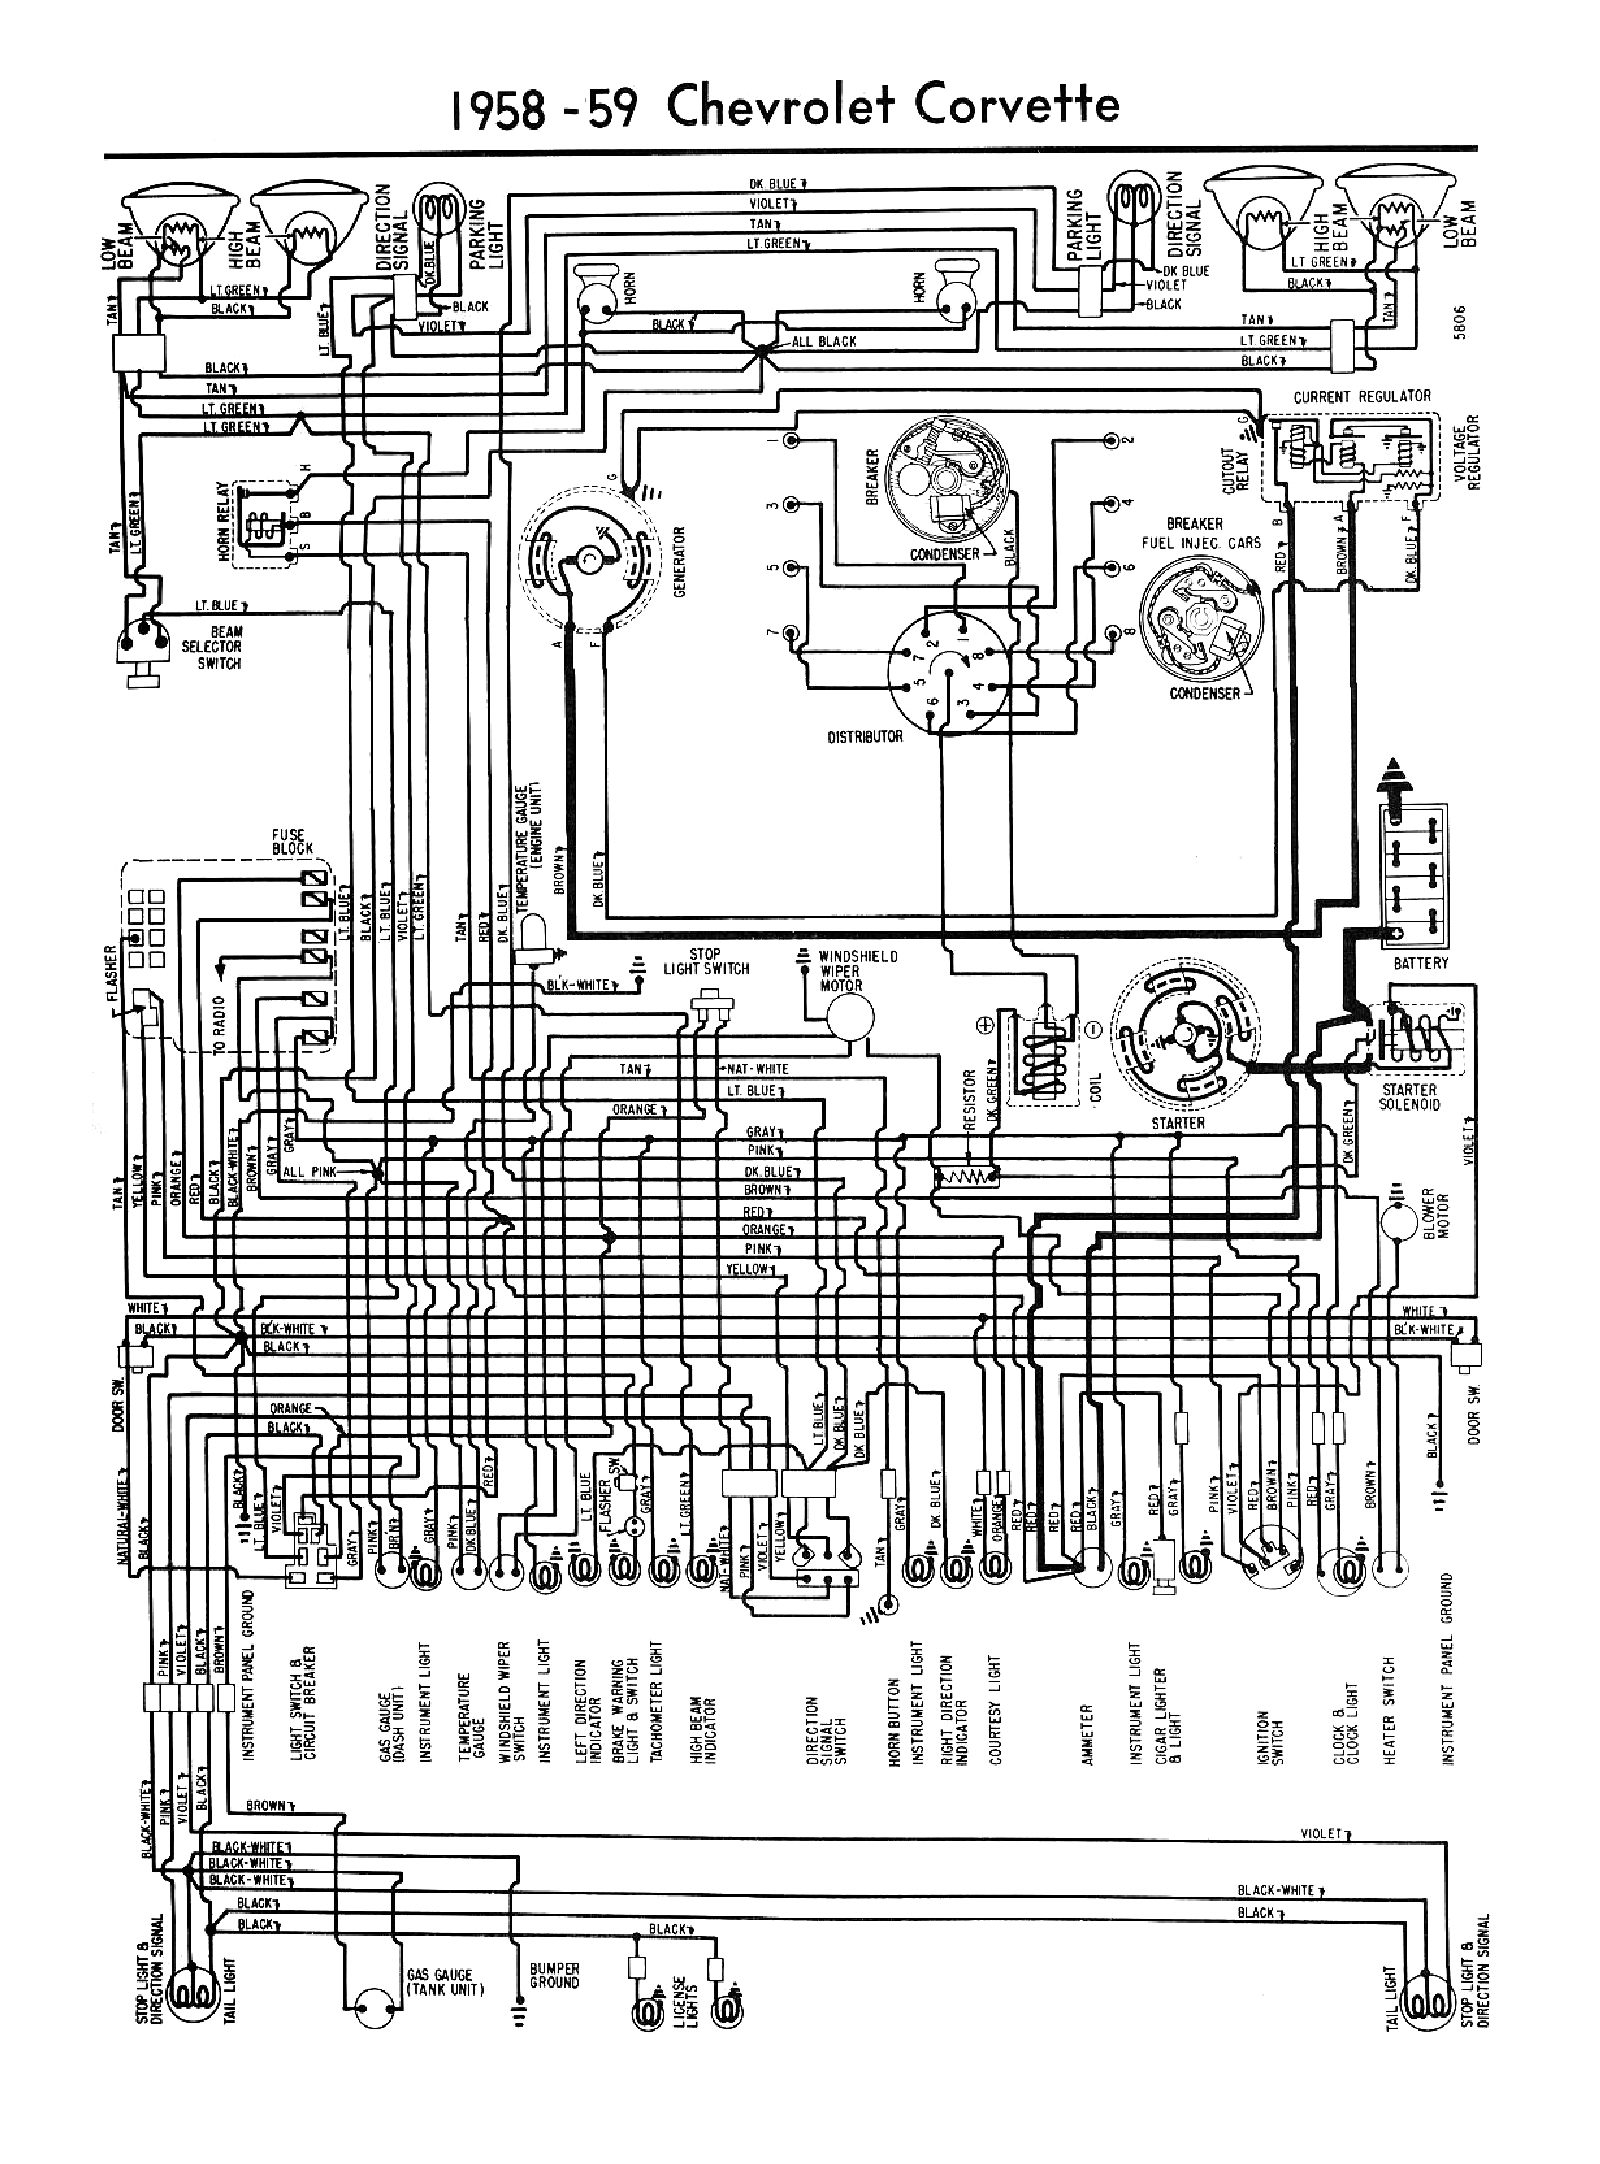 Simple Electrical Wiring Diagrams Basic Light Switch Diagram Pdf House Schematic 1972 Chevy Truck Rh David Huggett Co Uk